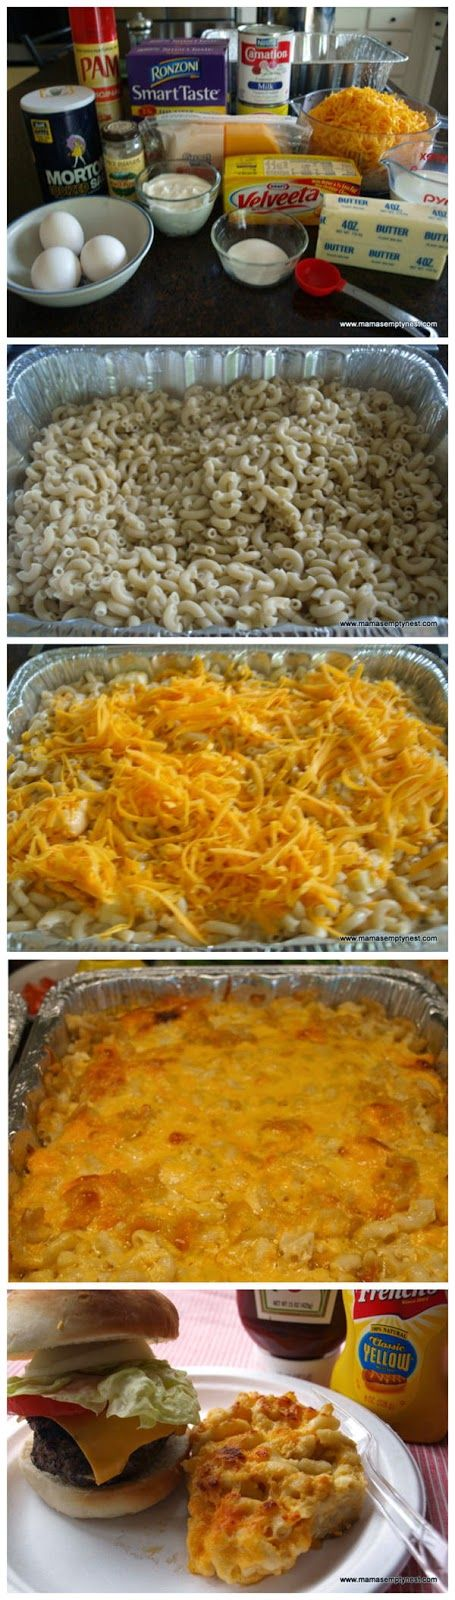 Sweetie Pie's Macaroni & Cheese